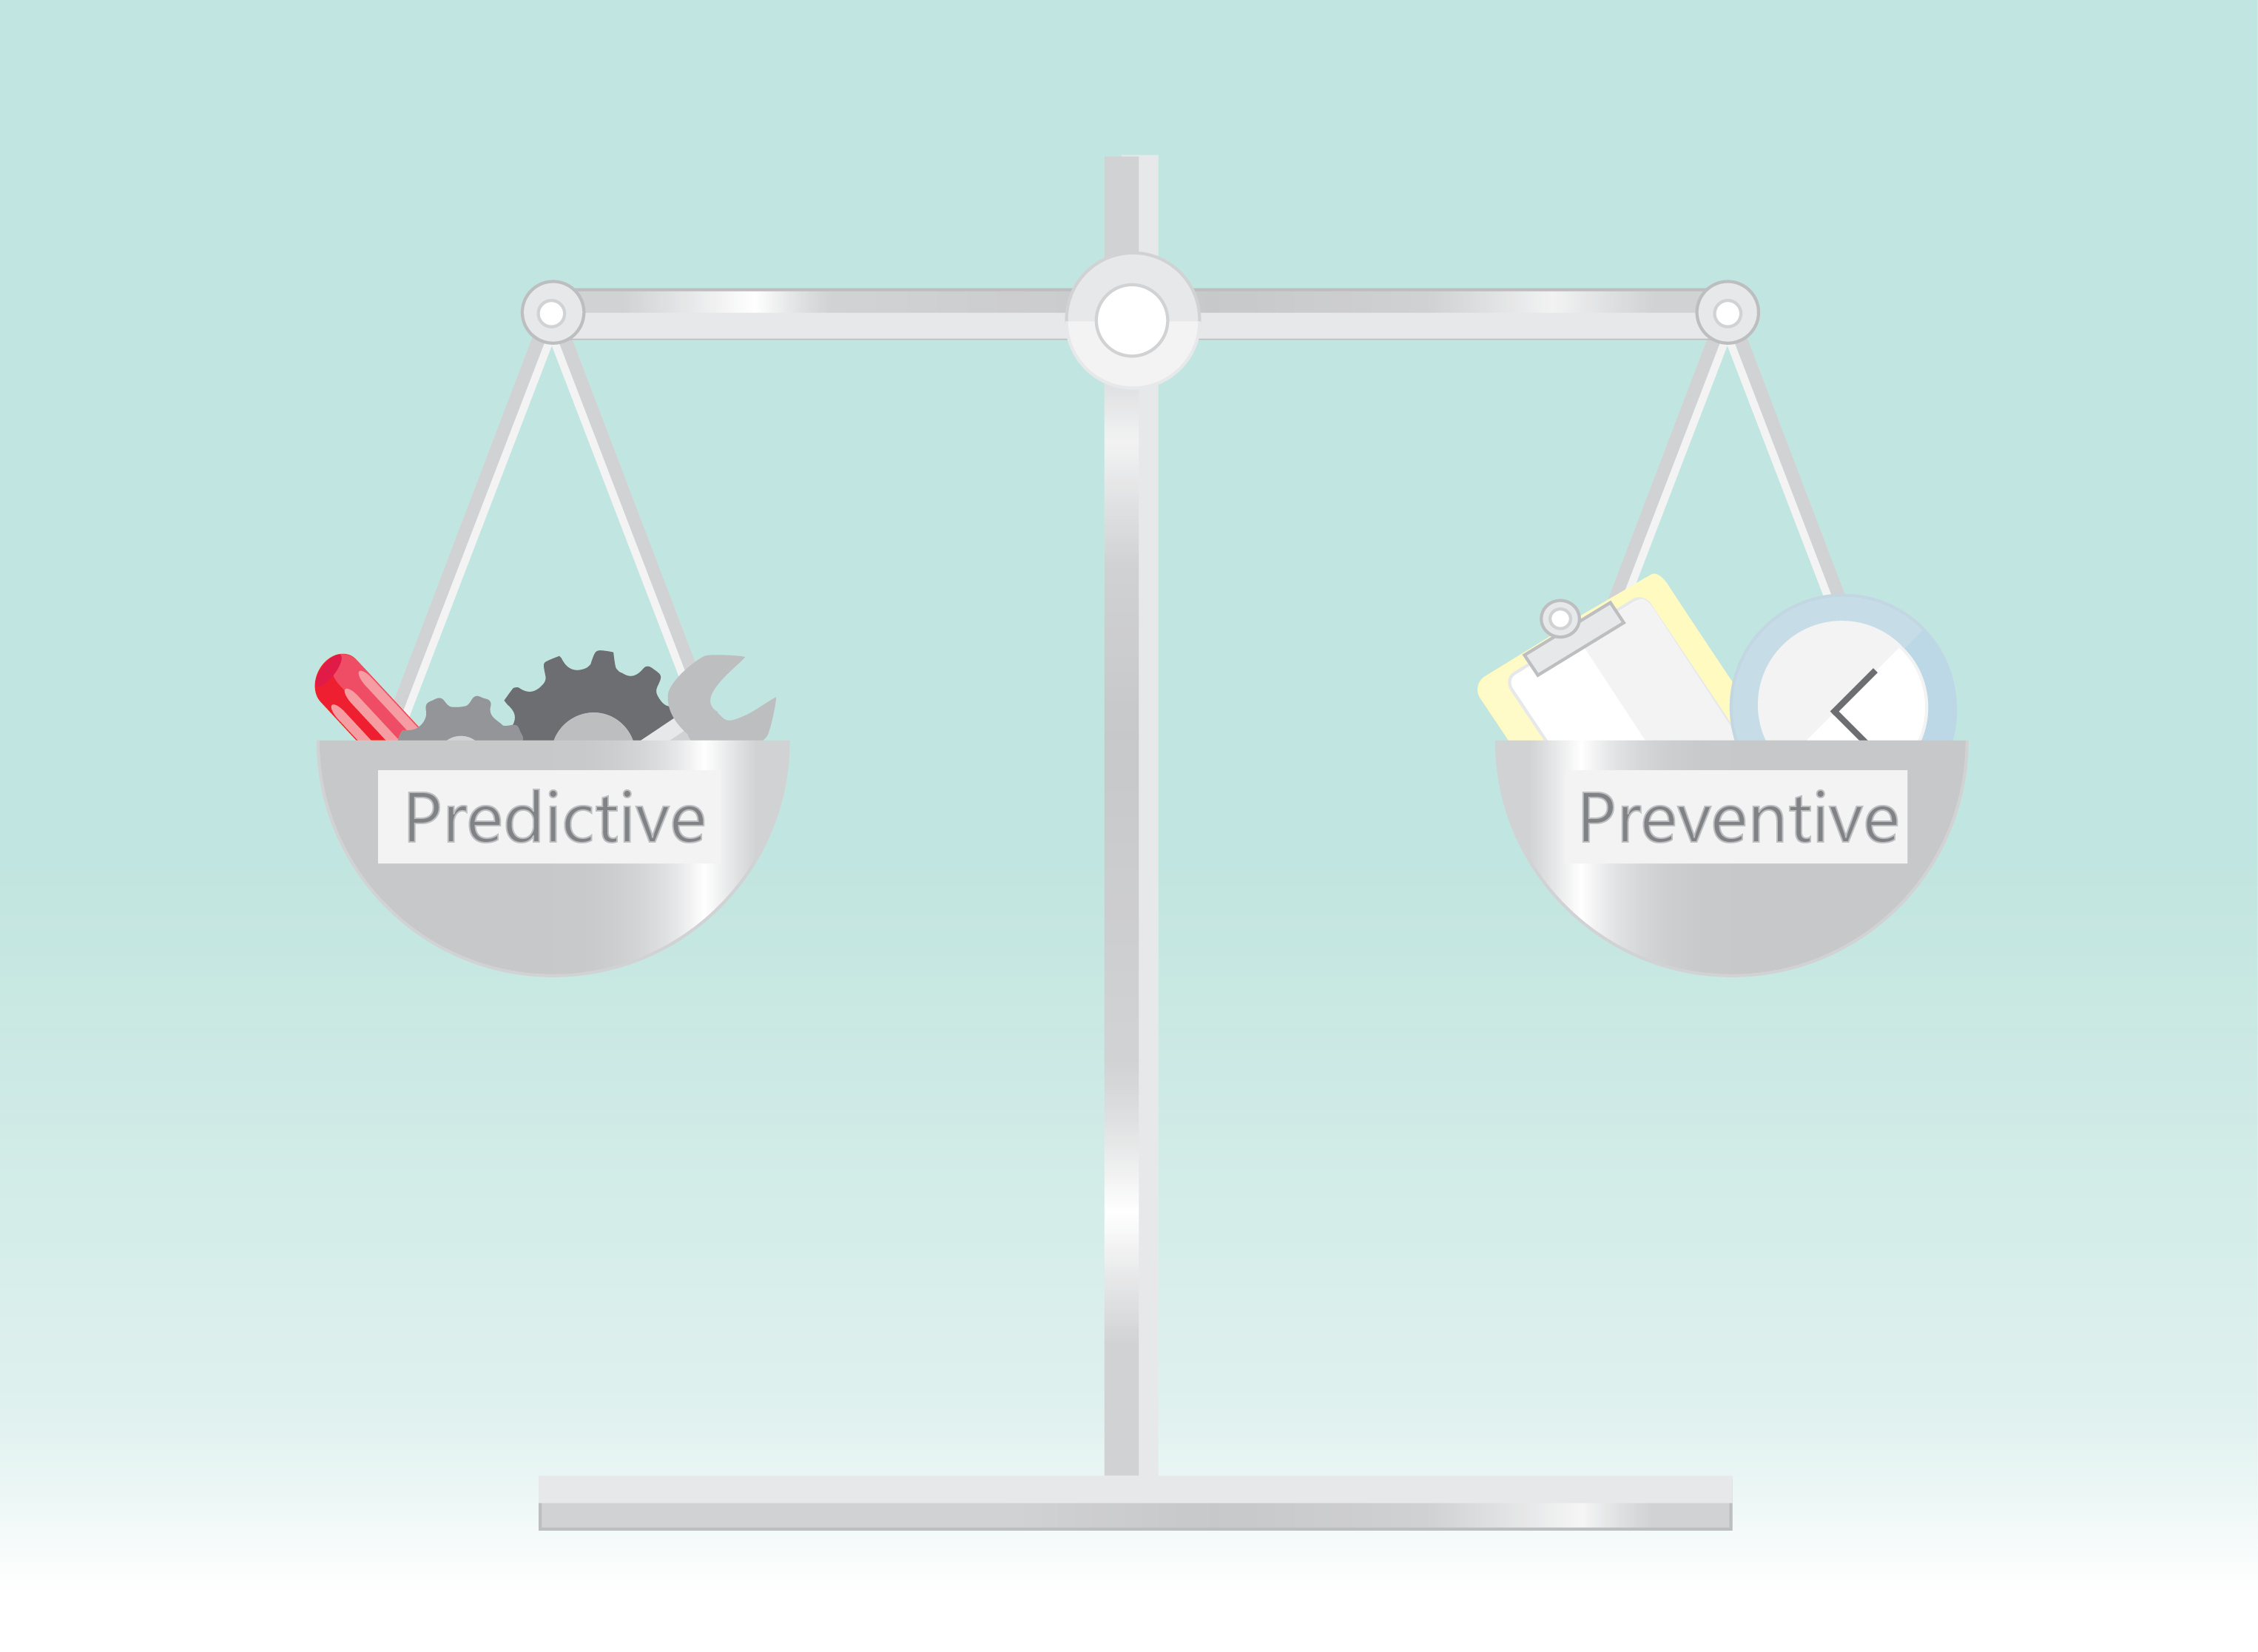 Predictive Maintenance on the left scale and Preventive Maintenance on the right scale